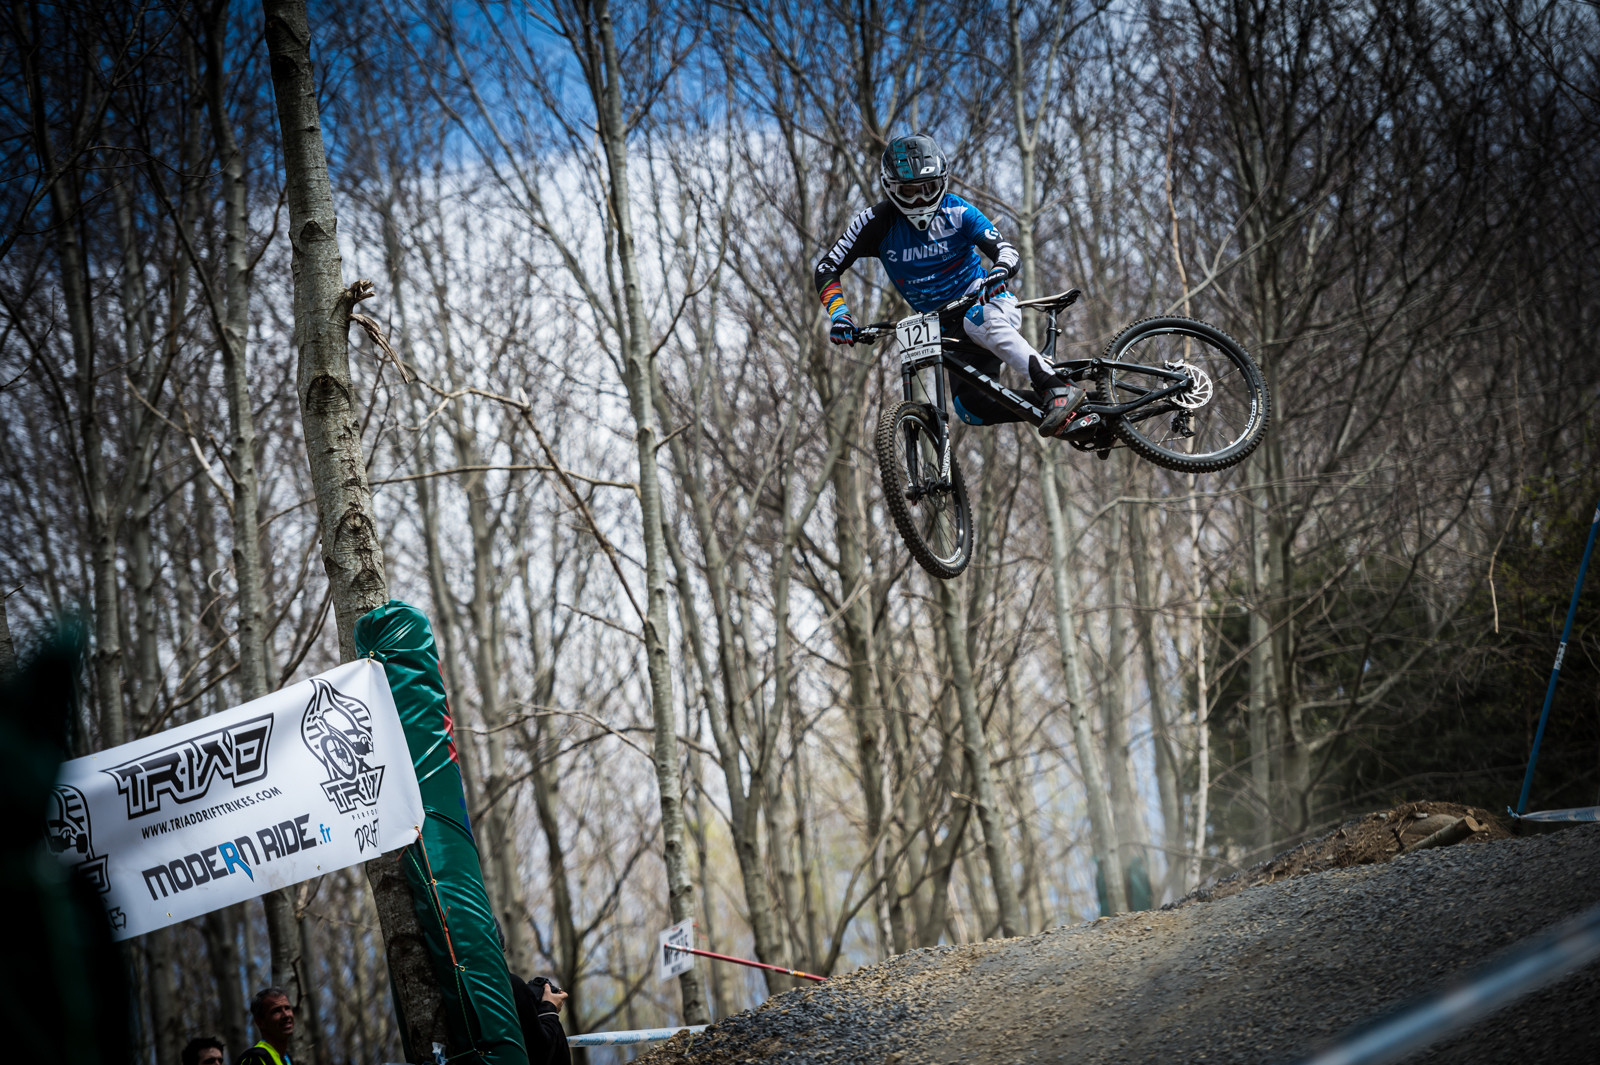 Reece Wilson World Cup Whip - World Cup Whip Off! - Mountain Biking Pictures - Vital MTB